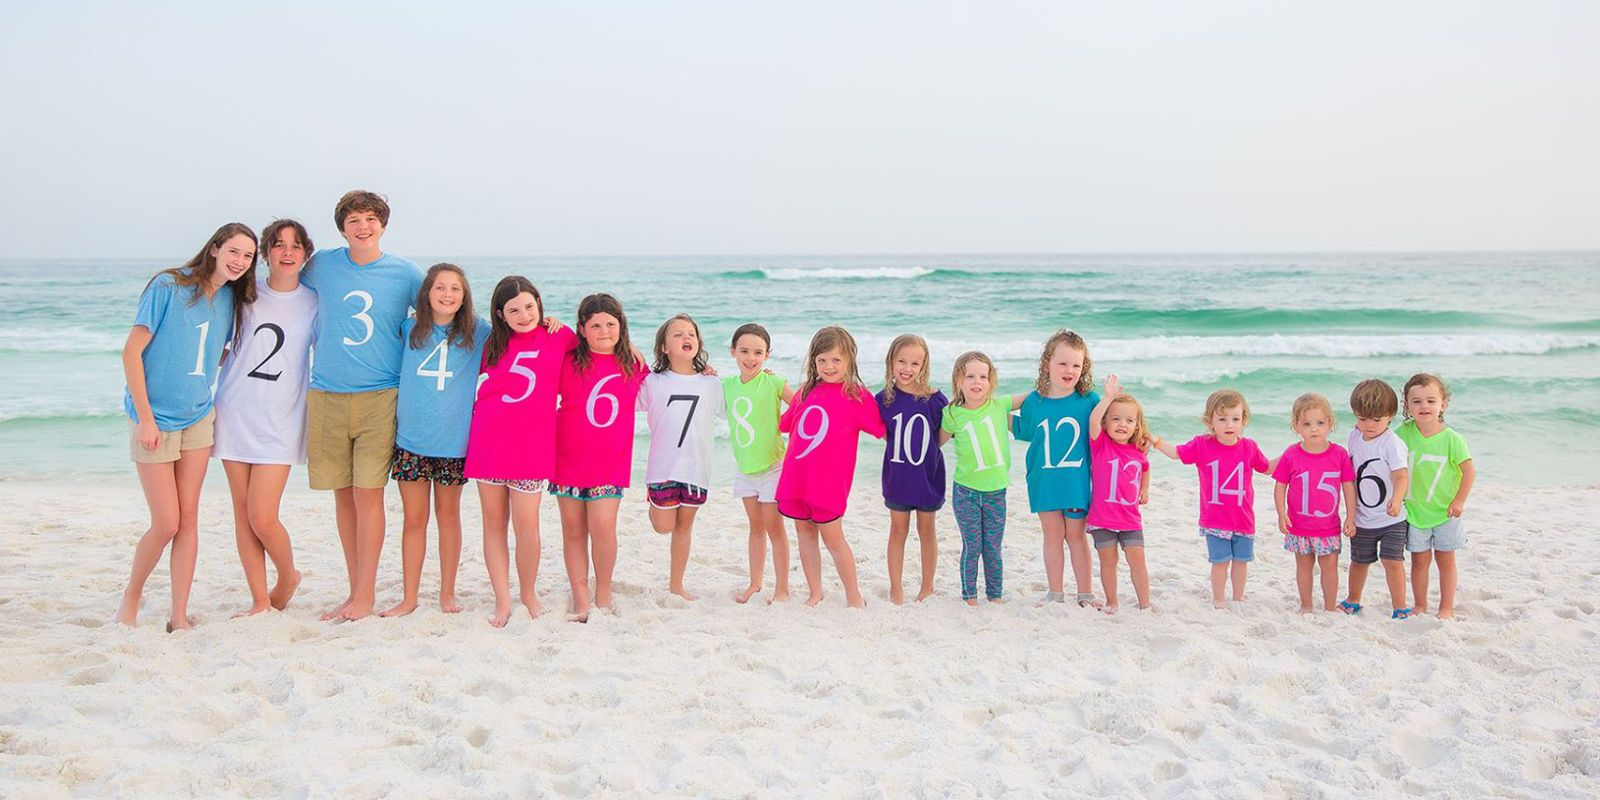 If You Have a Big Family, Youll Want to Steal This Grandkid Photo Idea